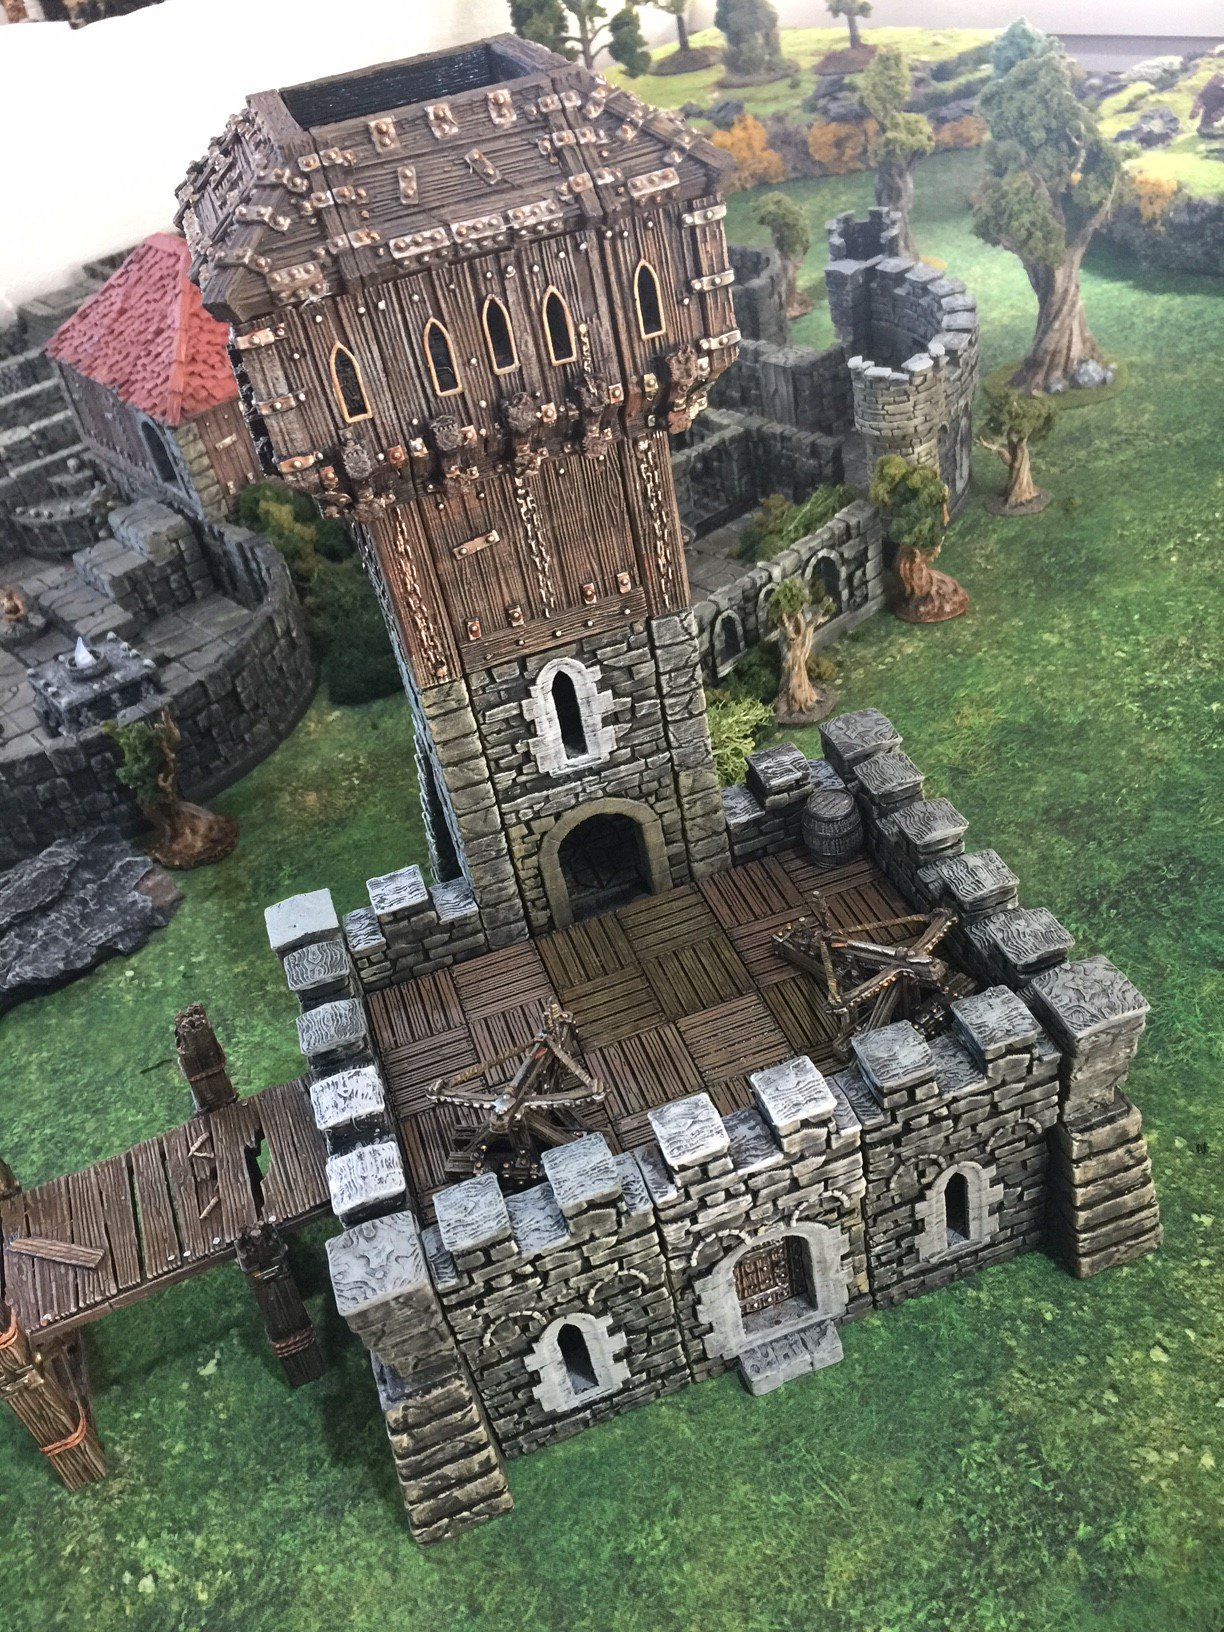 3d printed openlock castle tower